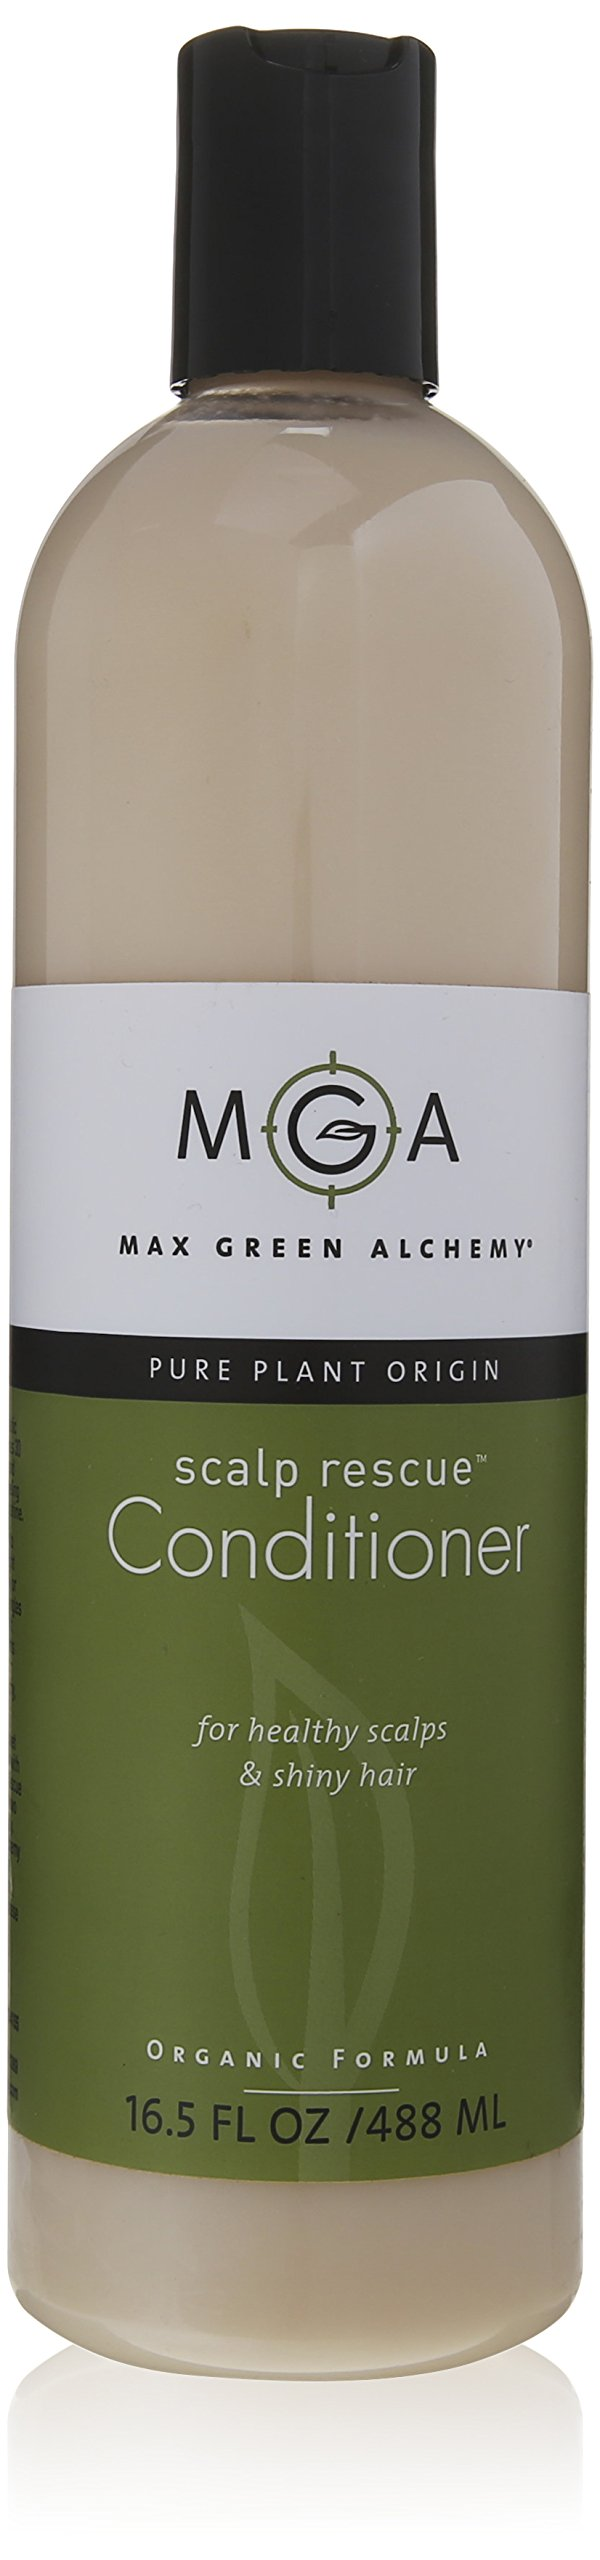 Max Green Alchemy Organic Formula Scalp Rescue Conditioner Value Size Bottle (16.5 Fluid Ounces)